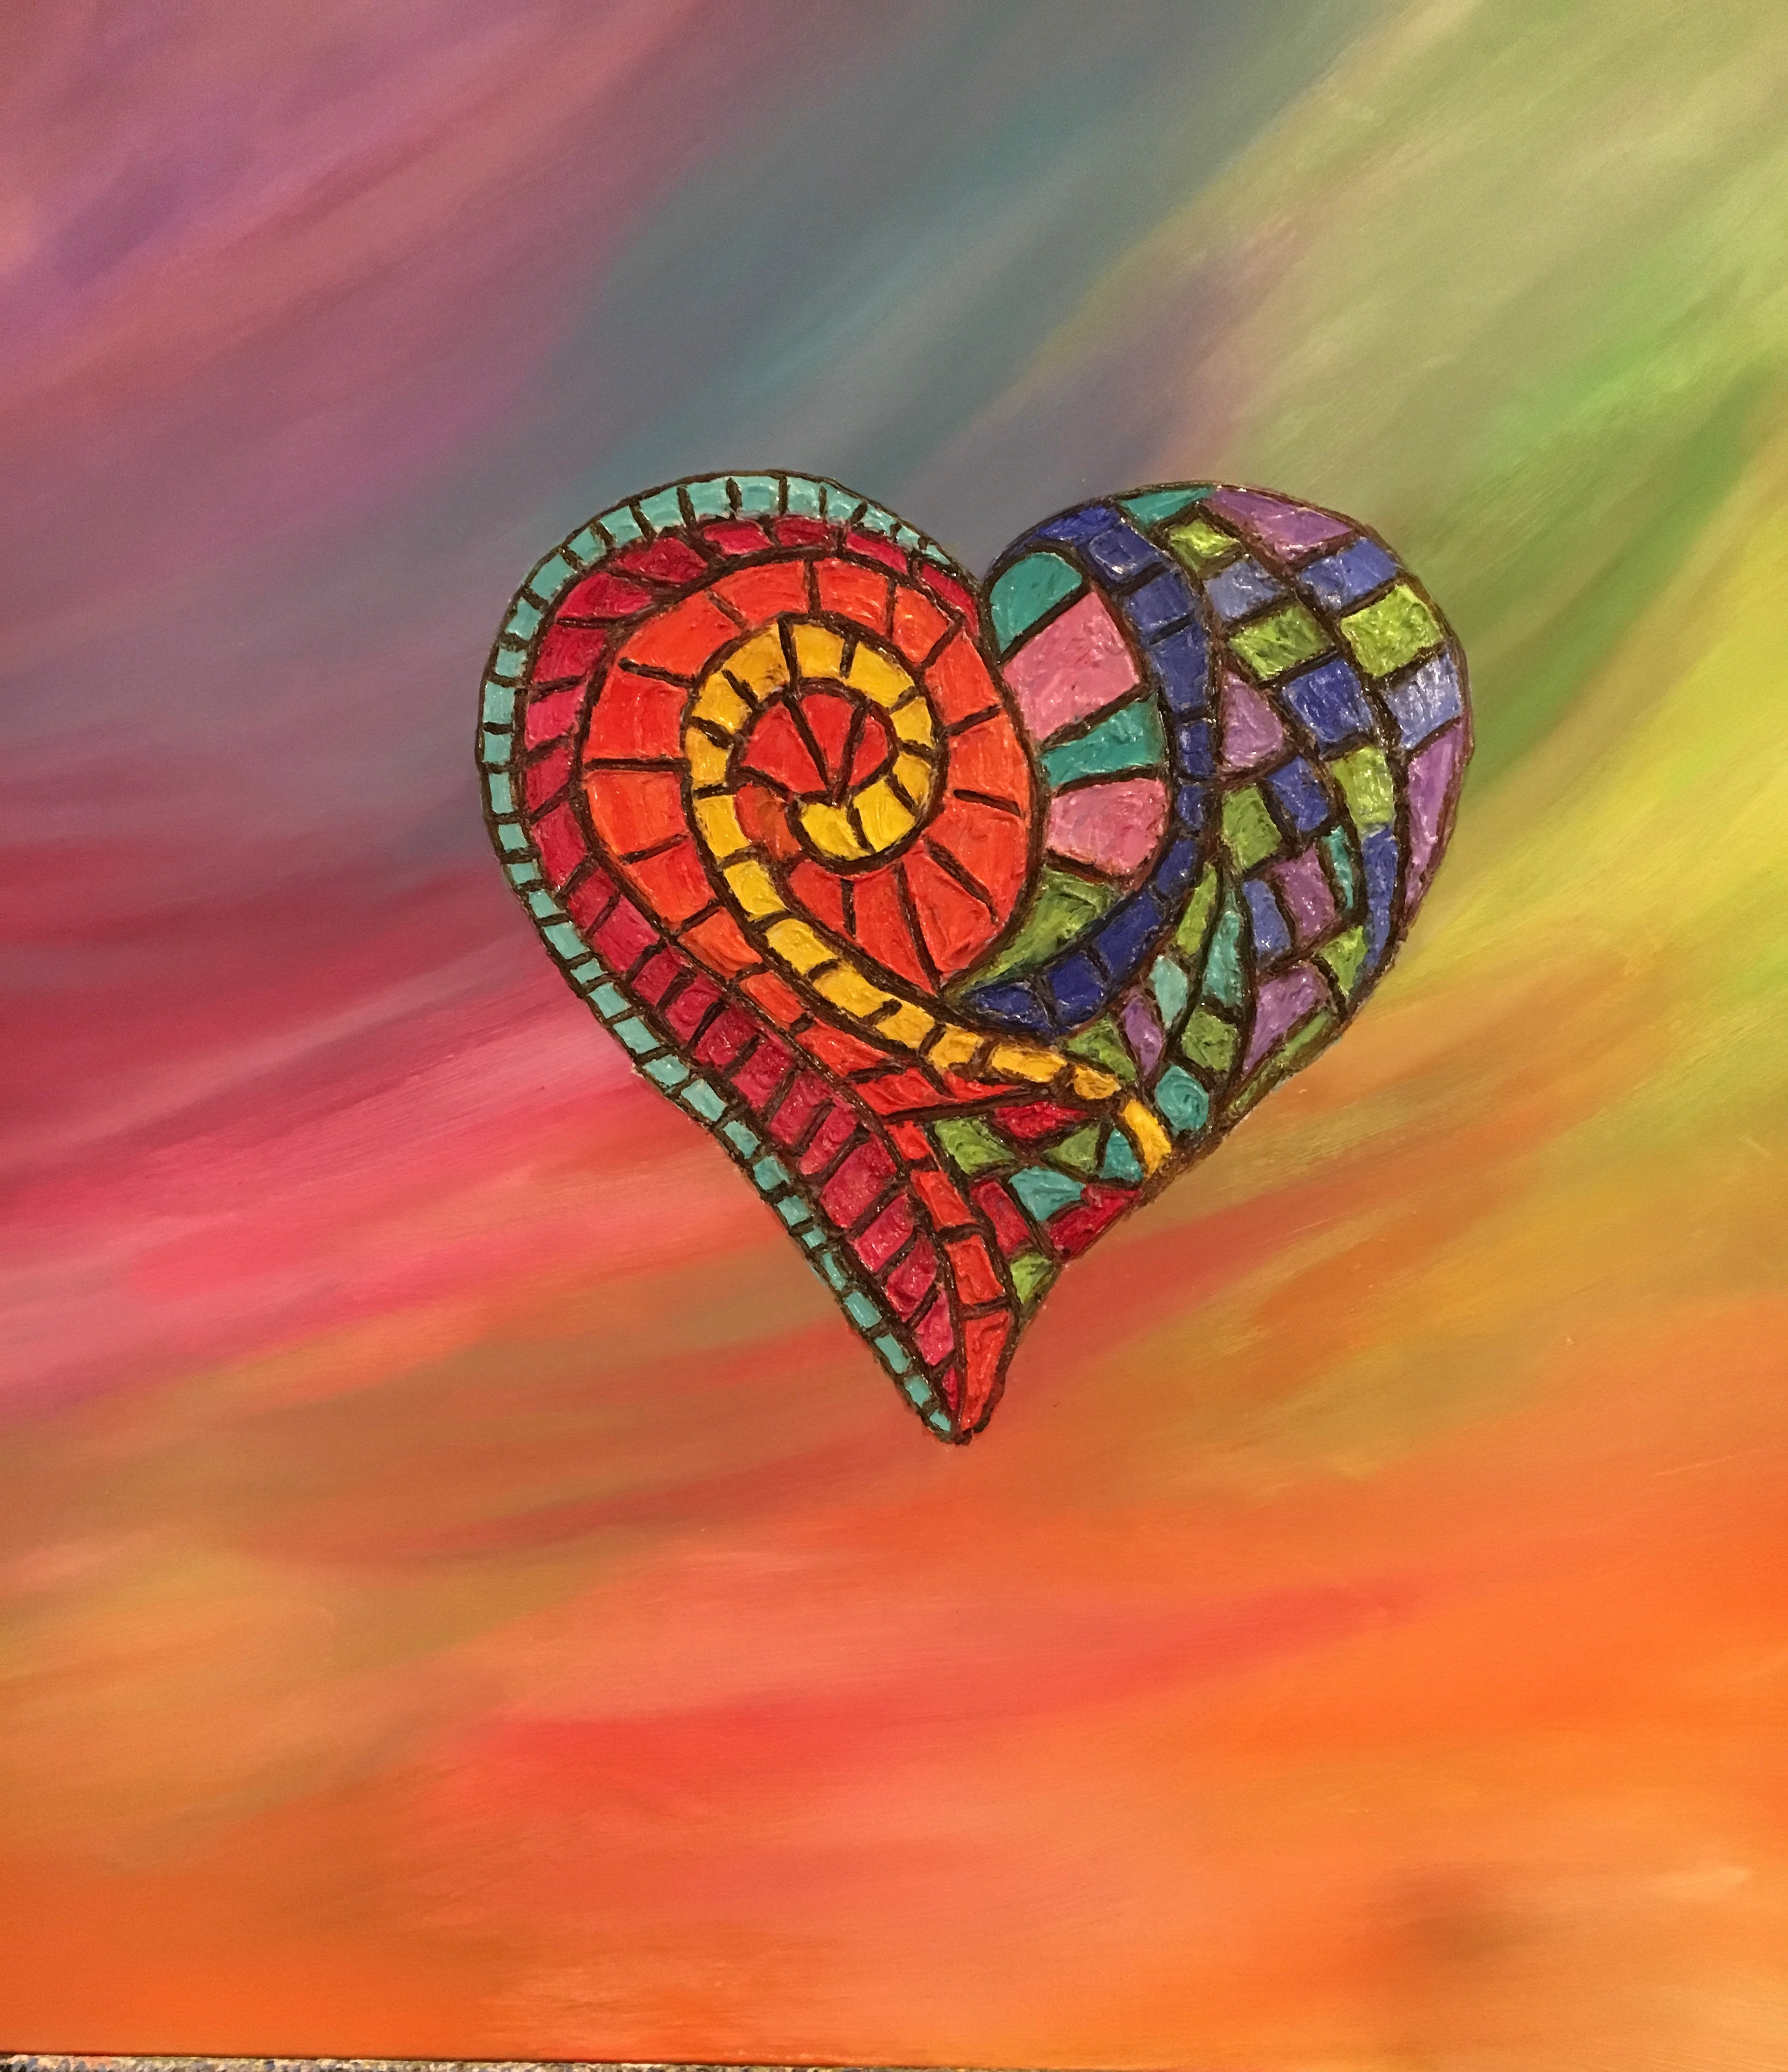 Mosaic Heart by Marylin Kitchen | ArtworkNetwork.com